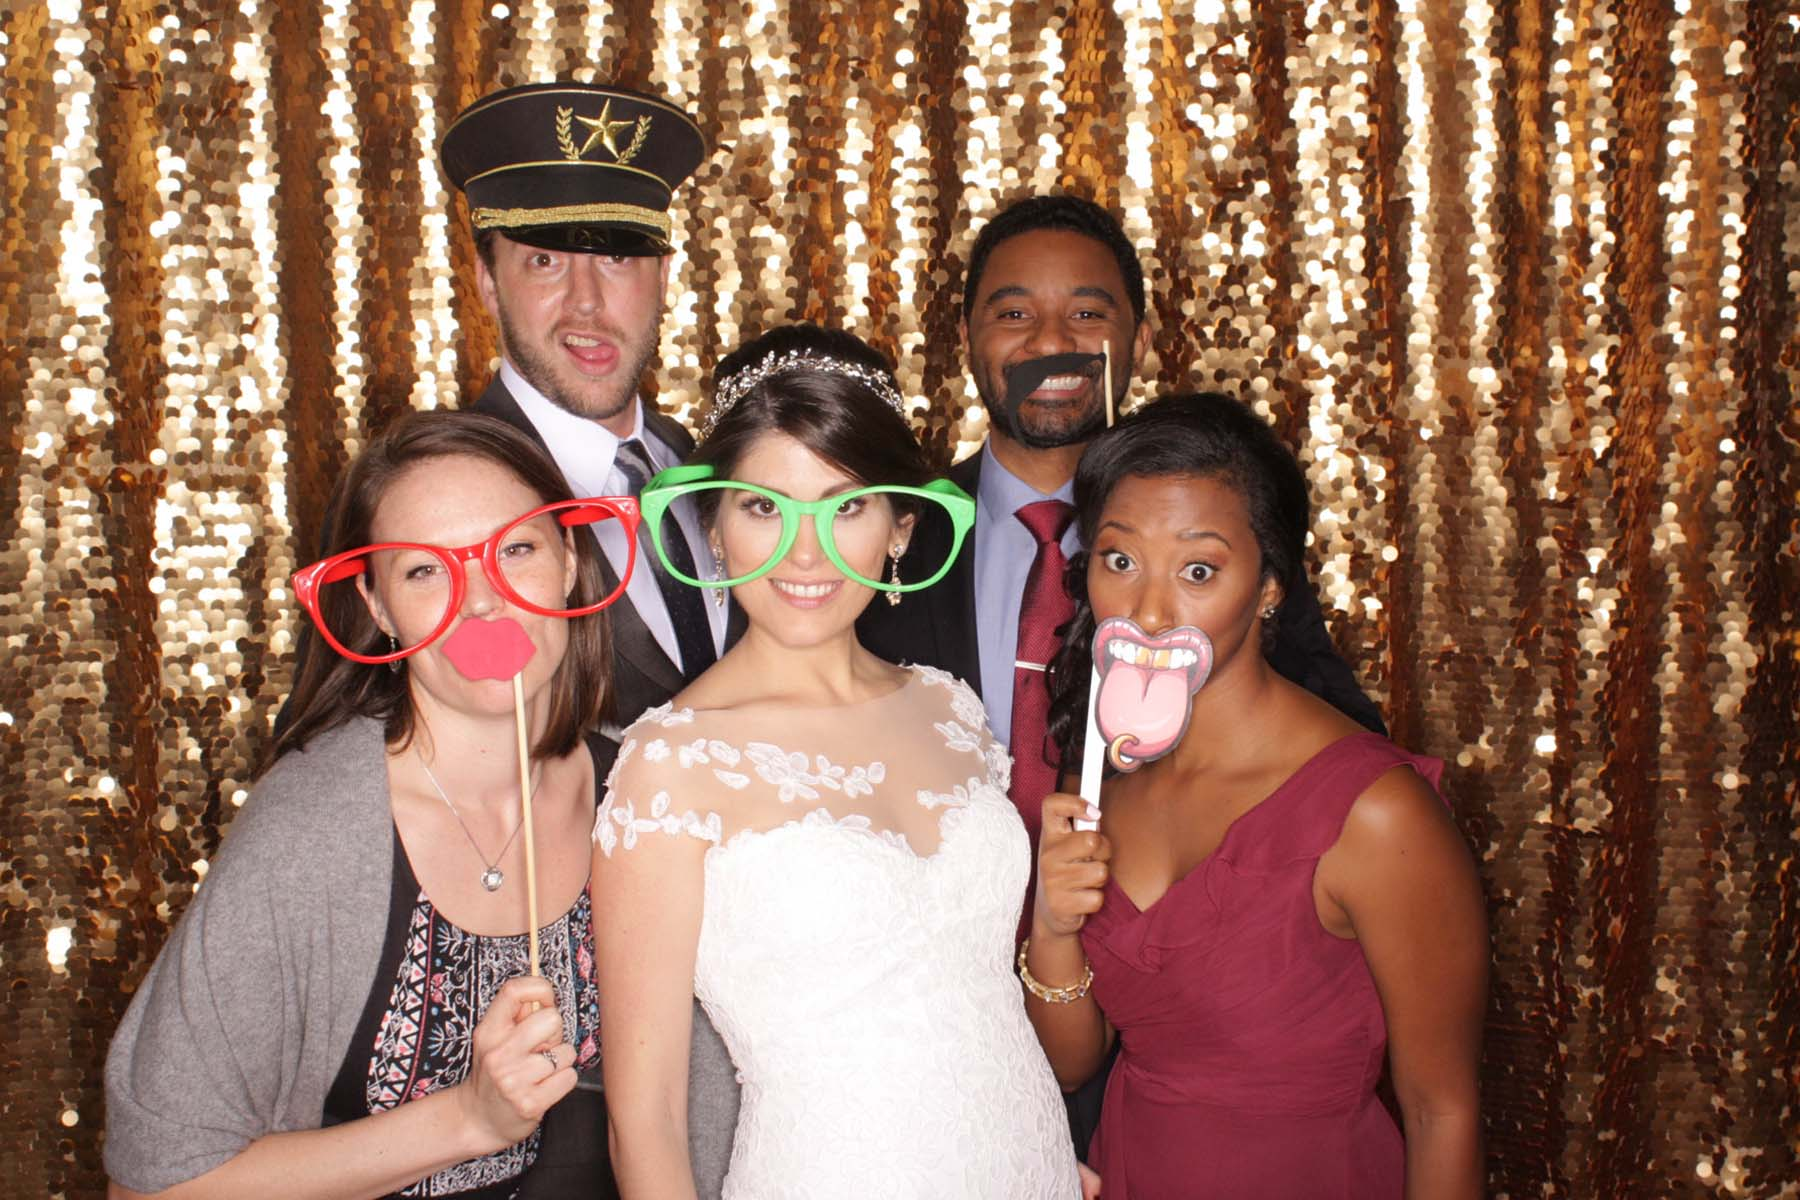 Bride with friends open air photo booth.